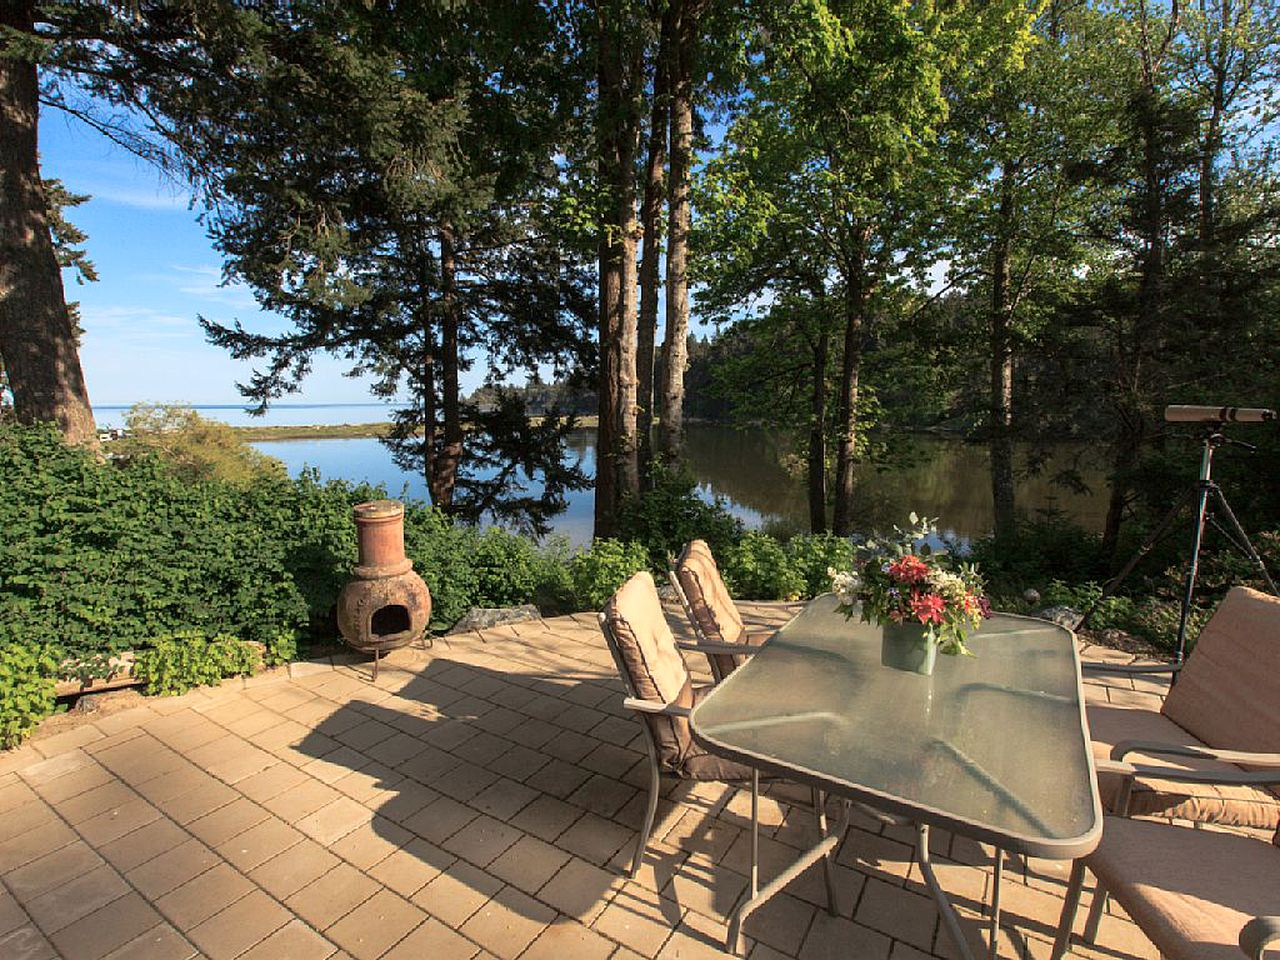 Waterfront cottage rentals: Victoria, BC, Canada